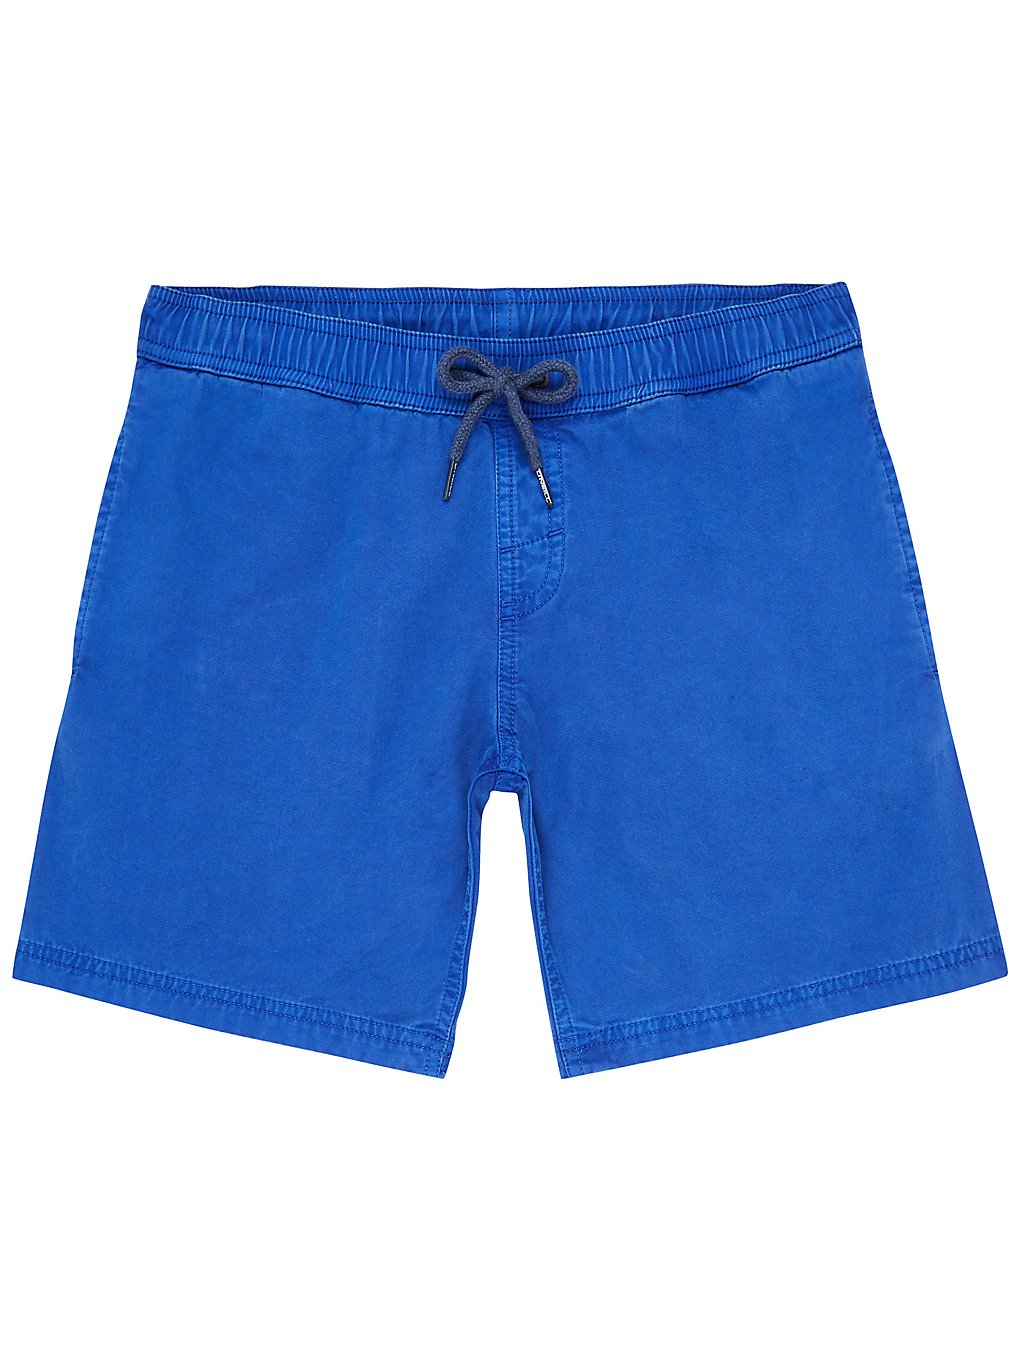 O'Neill Surfs Out Shorts dazzling blue